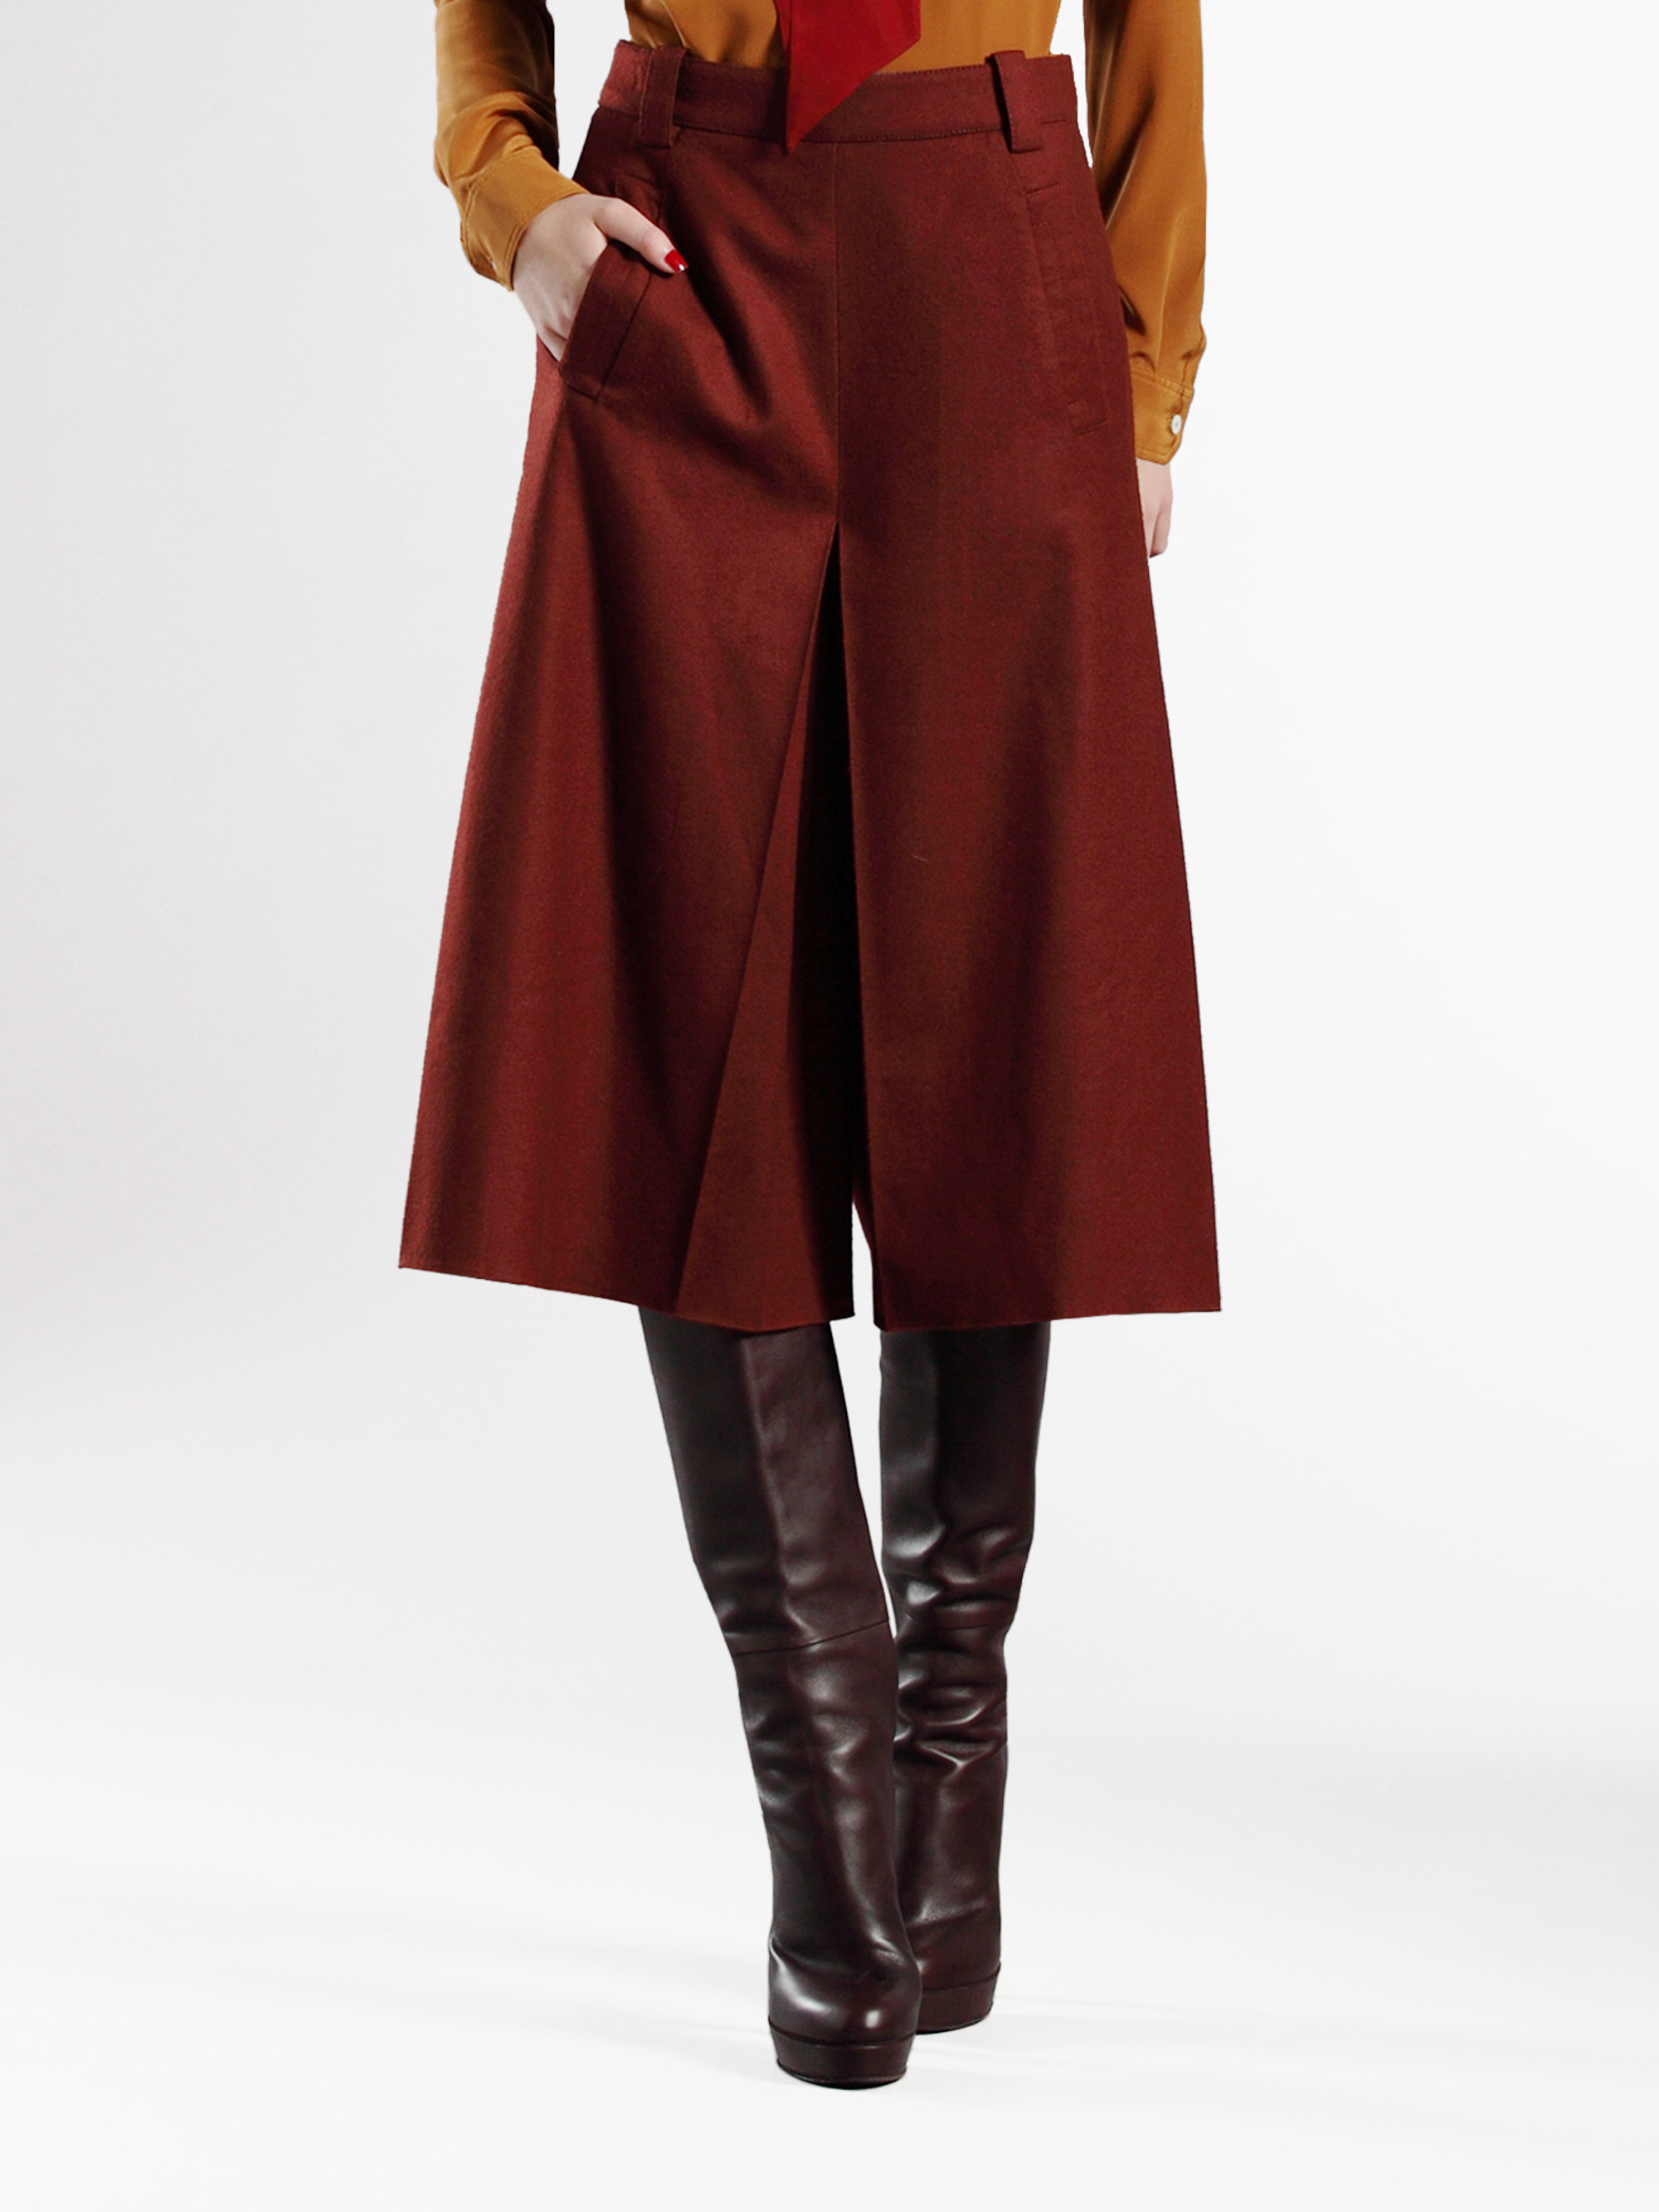 Gucci Woolcashmere Gaucho Pants in Red | Lyst